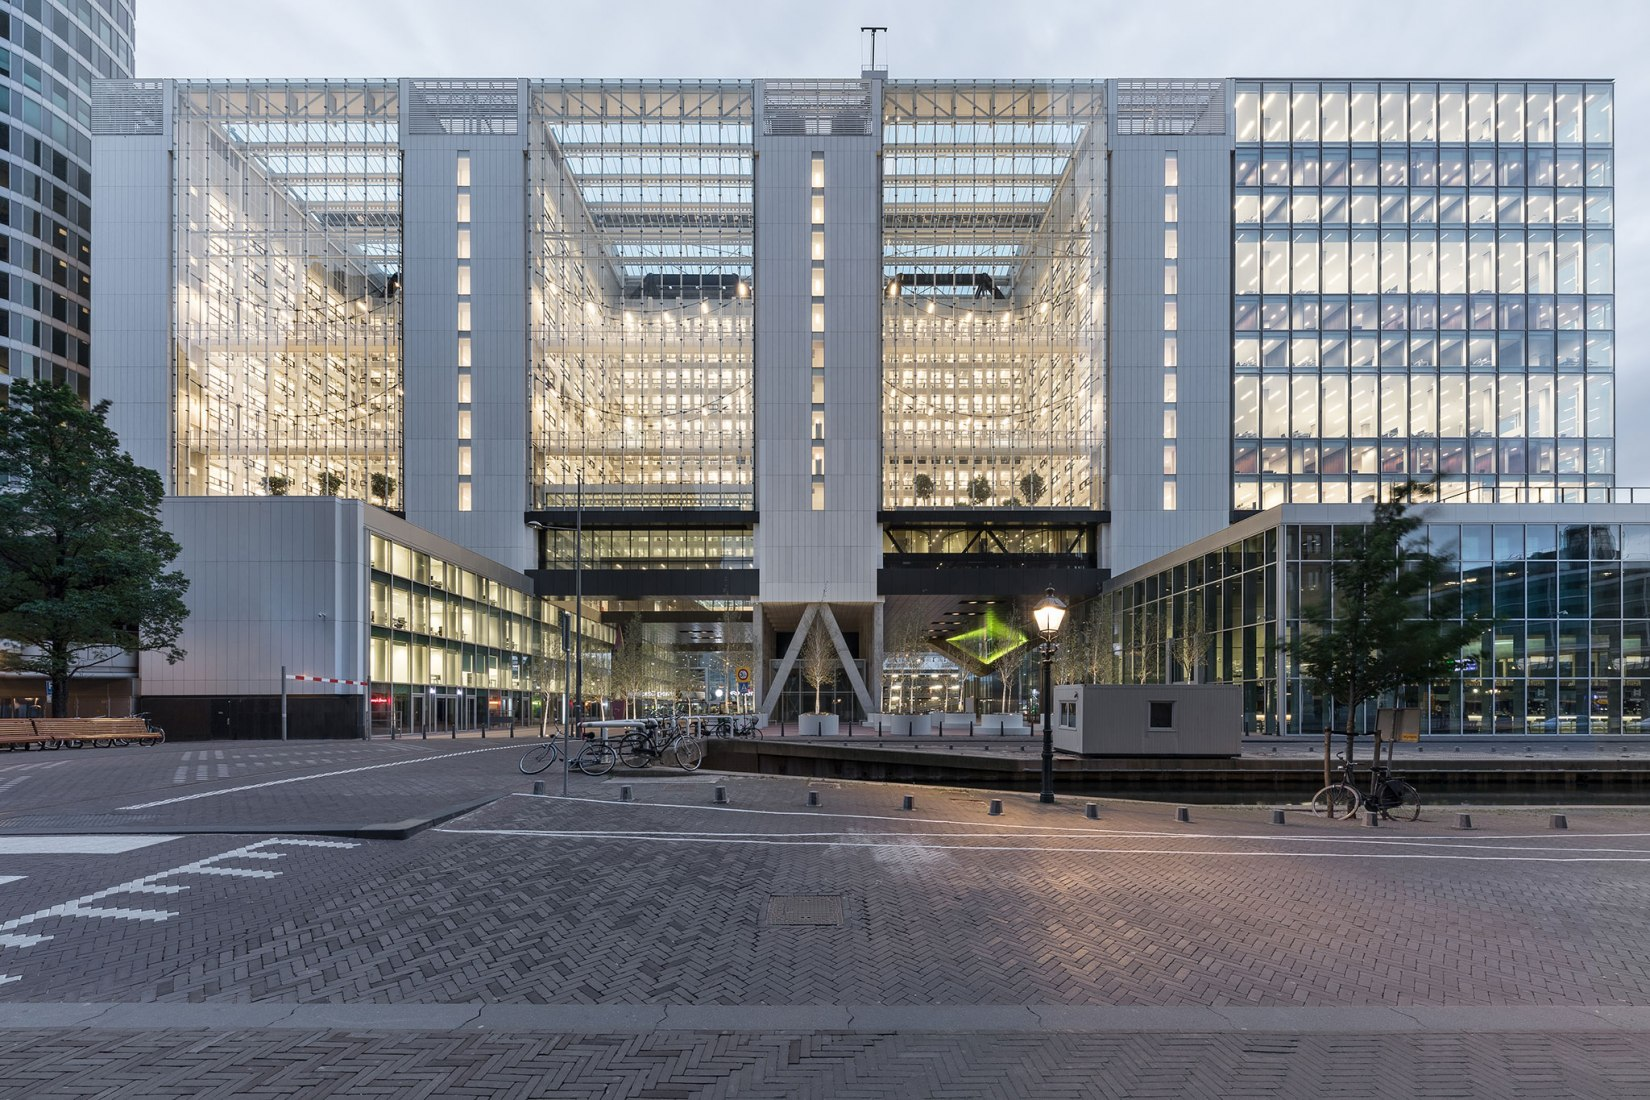 Exterior view access. Rijnstraat 8 by OMA. Photograph by Delfino Sisto Legnani and Marco Cappelletti, courtesy of OMA.